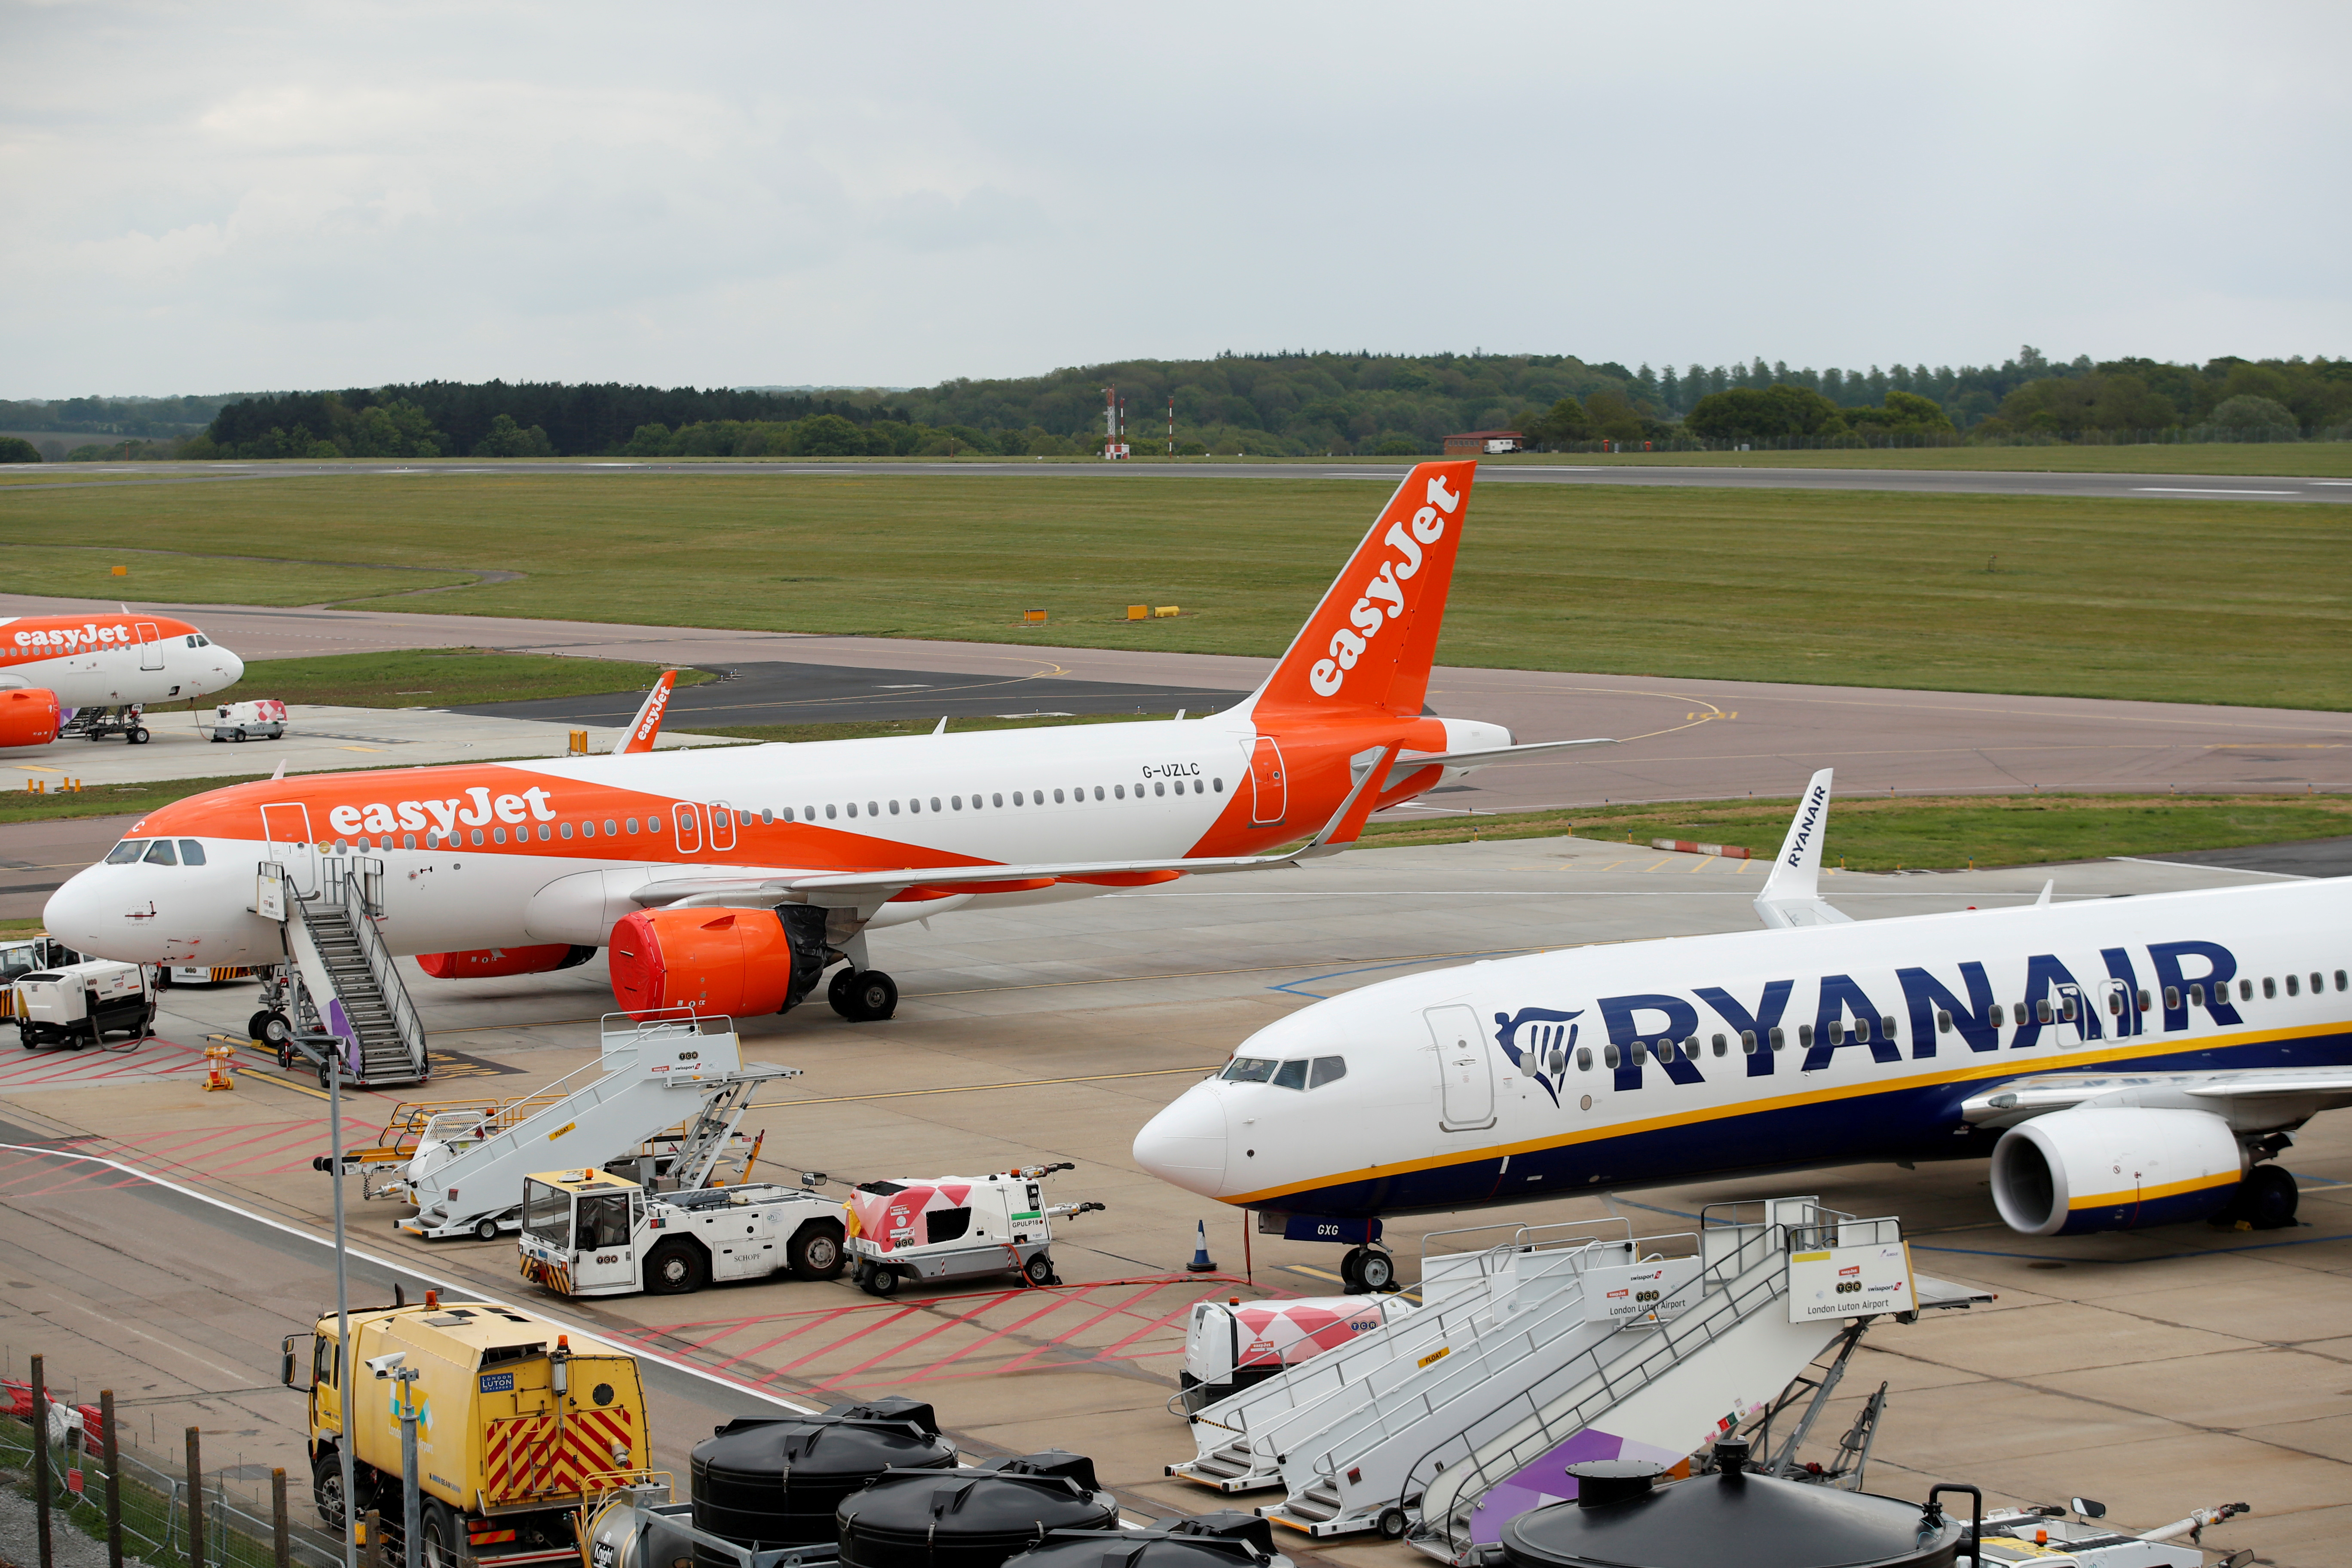 A Ryanair Boeing 737 and and an Easyjet Airbus A320 are seen at Luton Airport, Britain, April 26, 2020. REUTERS/Andrew Boyers/File Photo